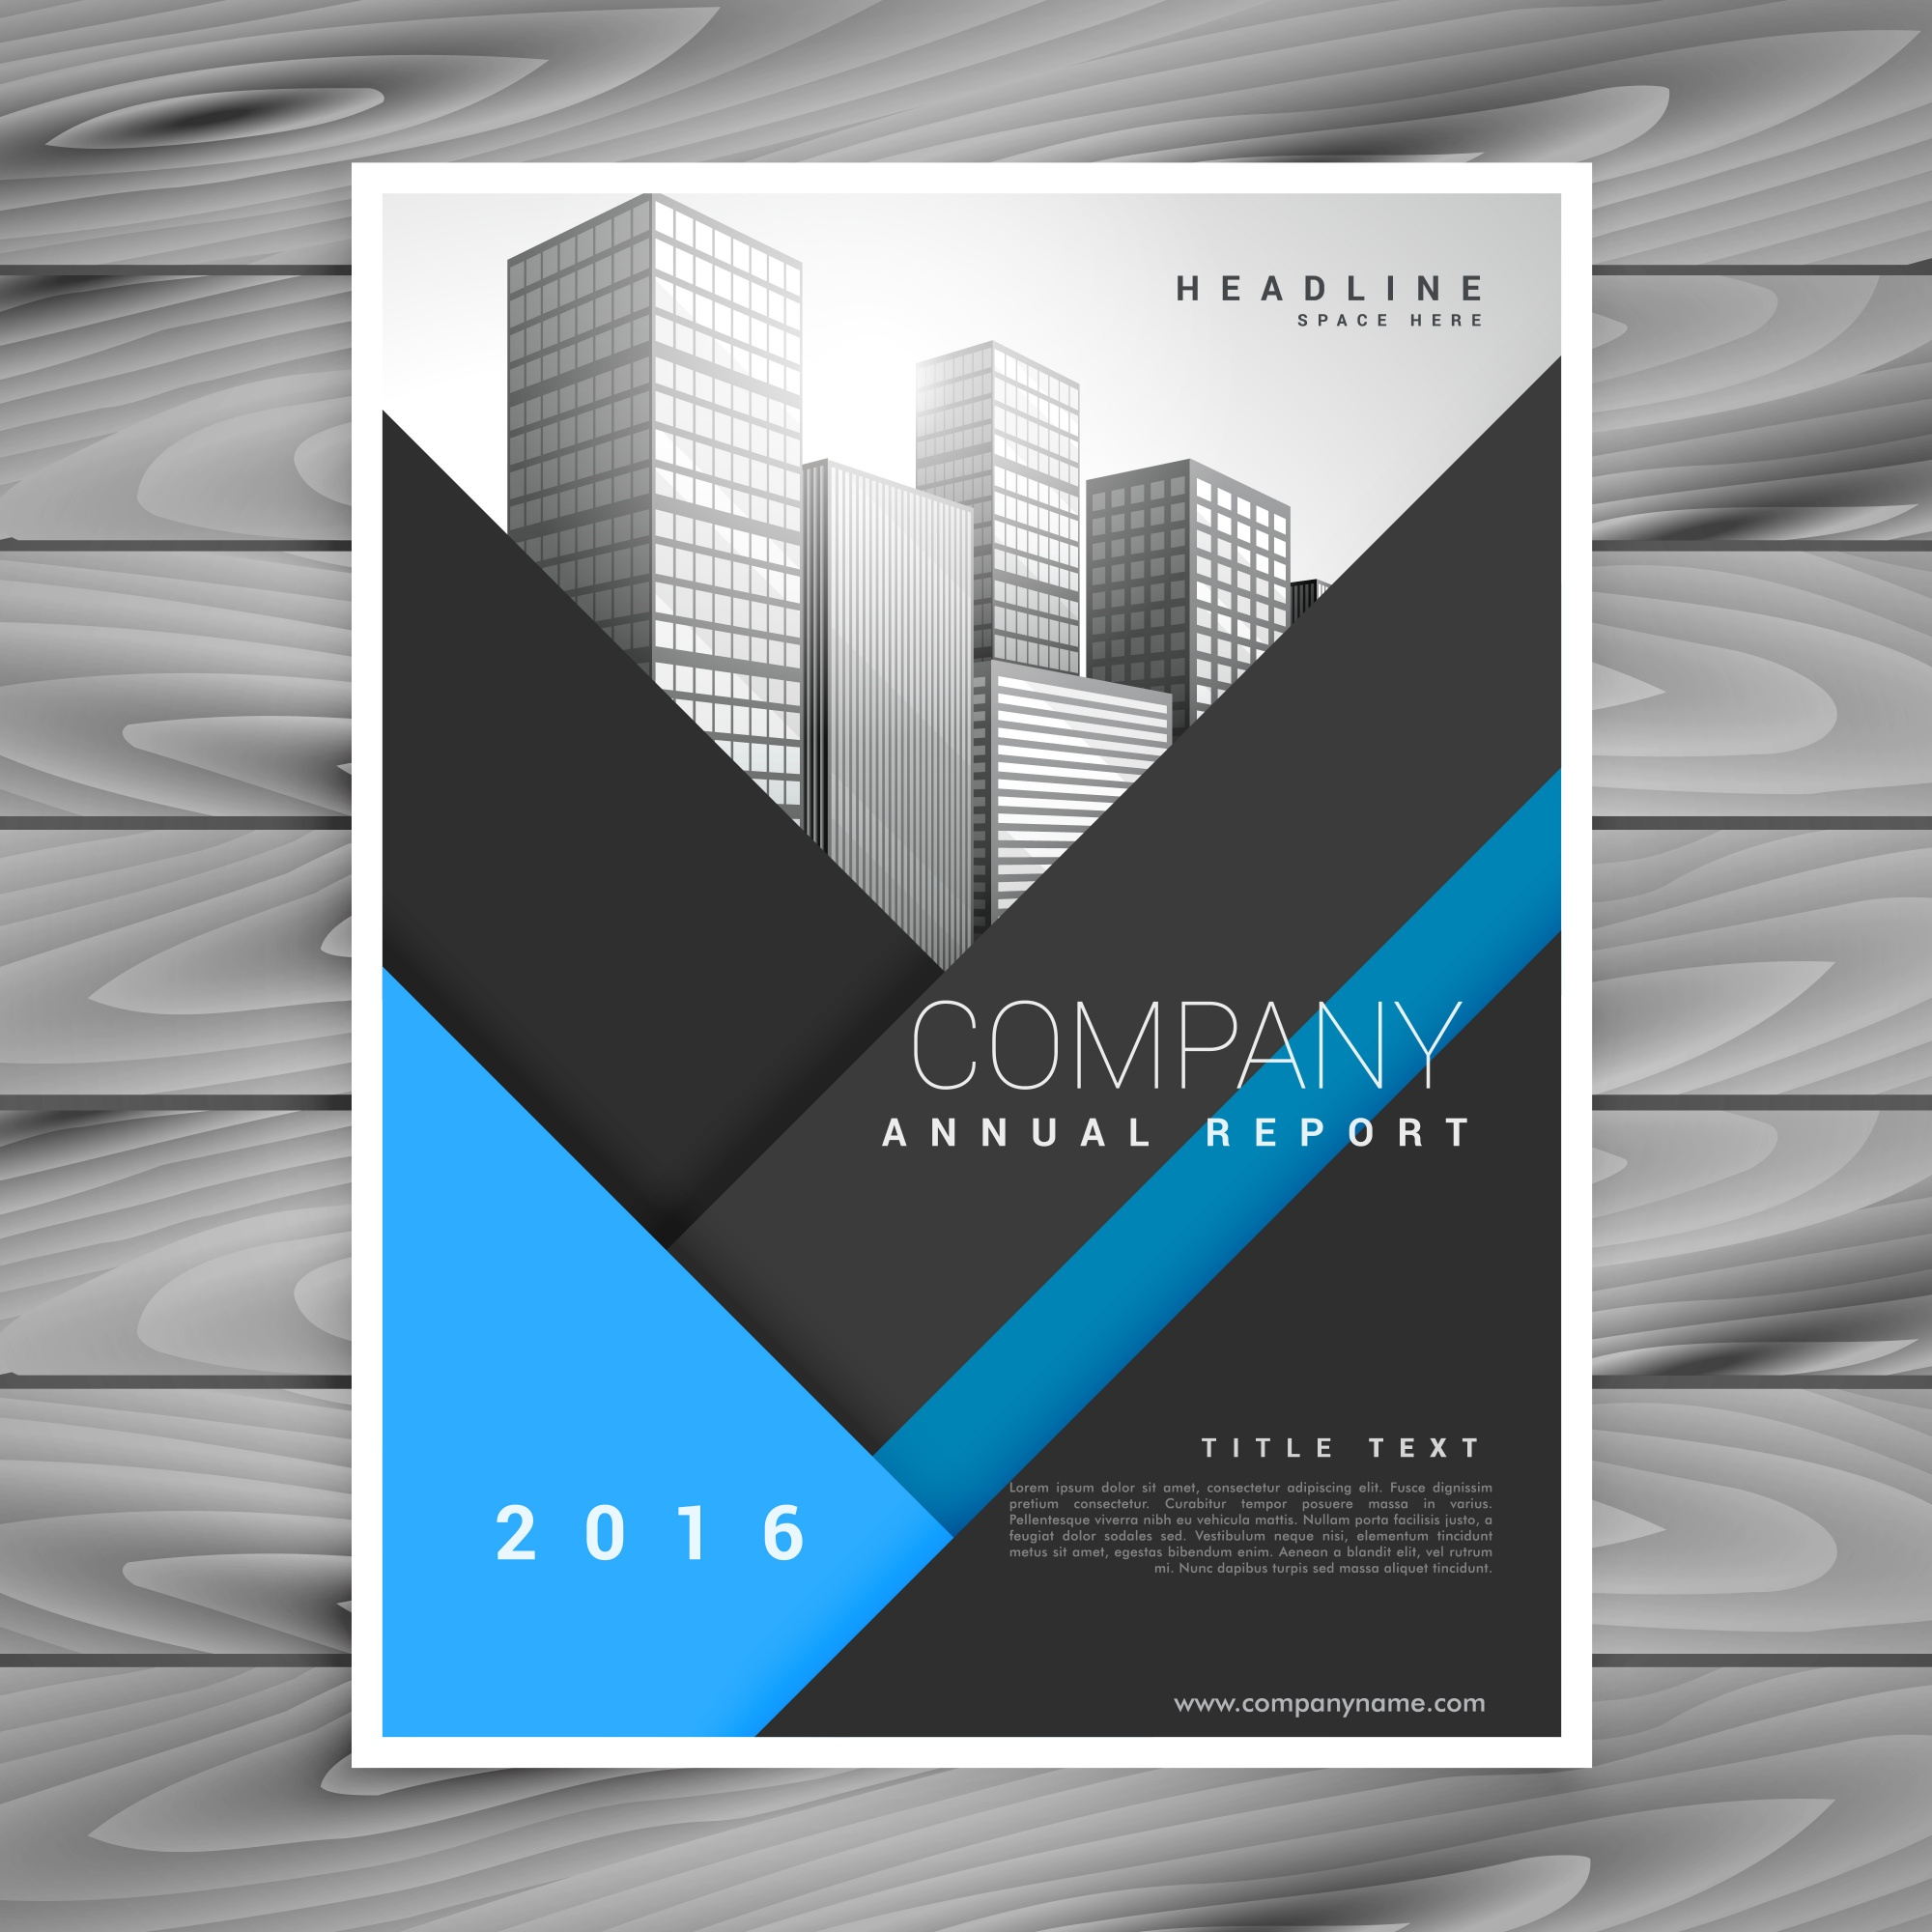 Business annual report brochure design